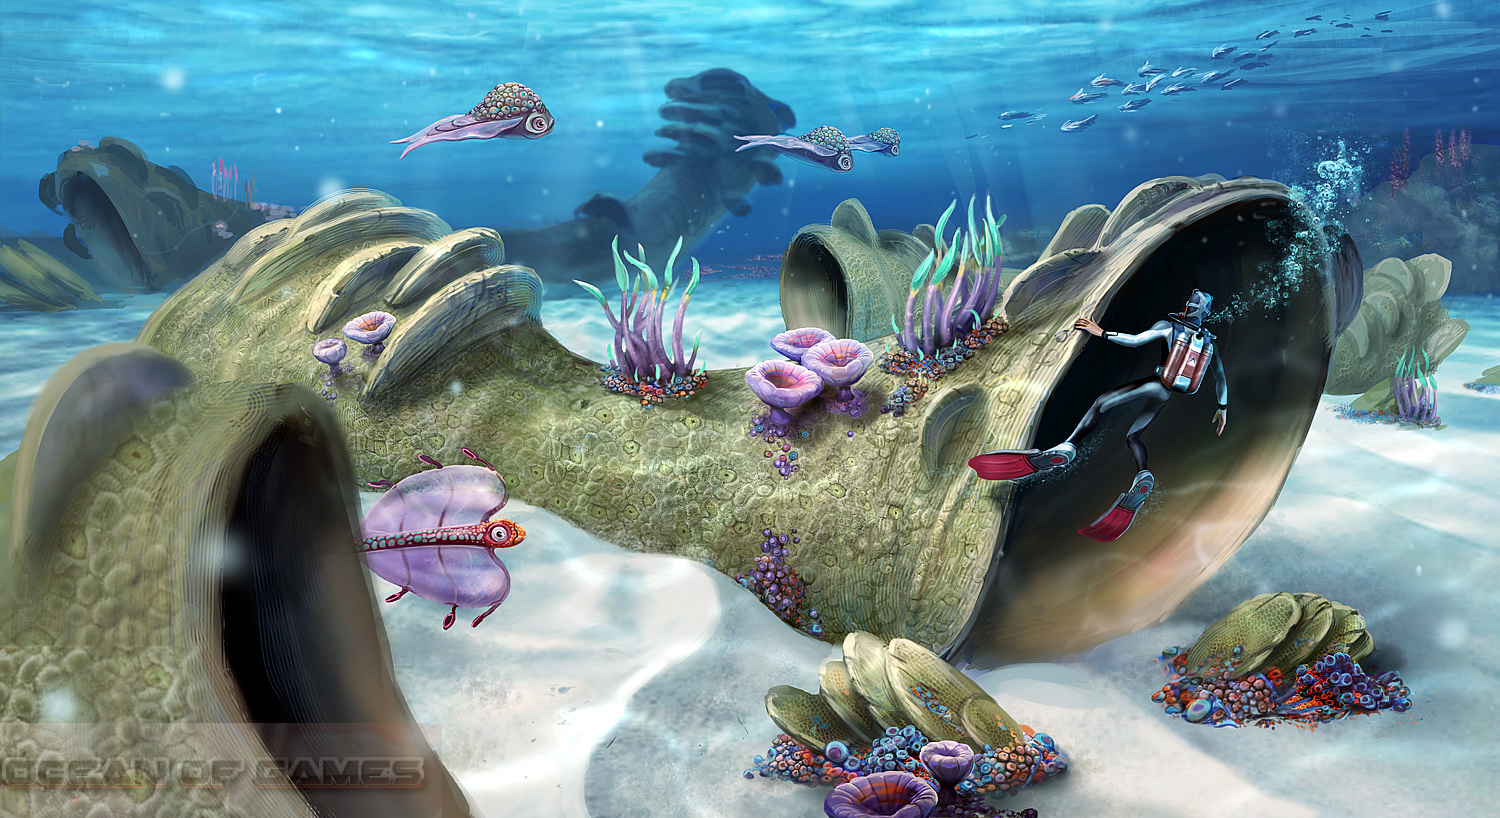 Subnautica Setup Download For Free